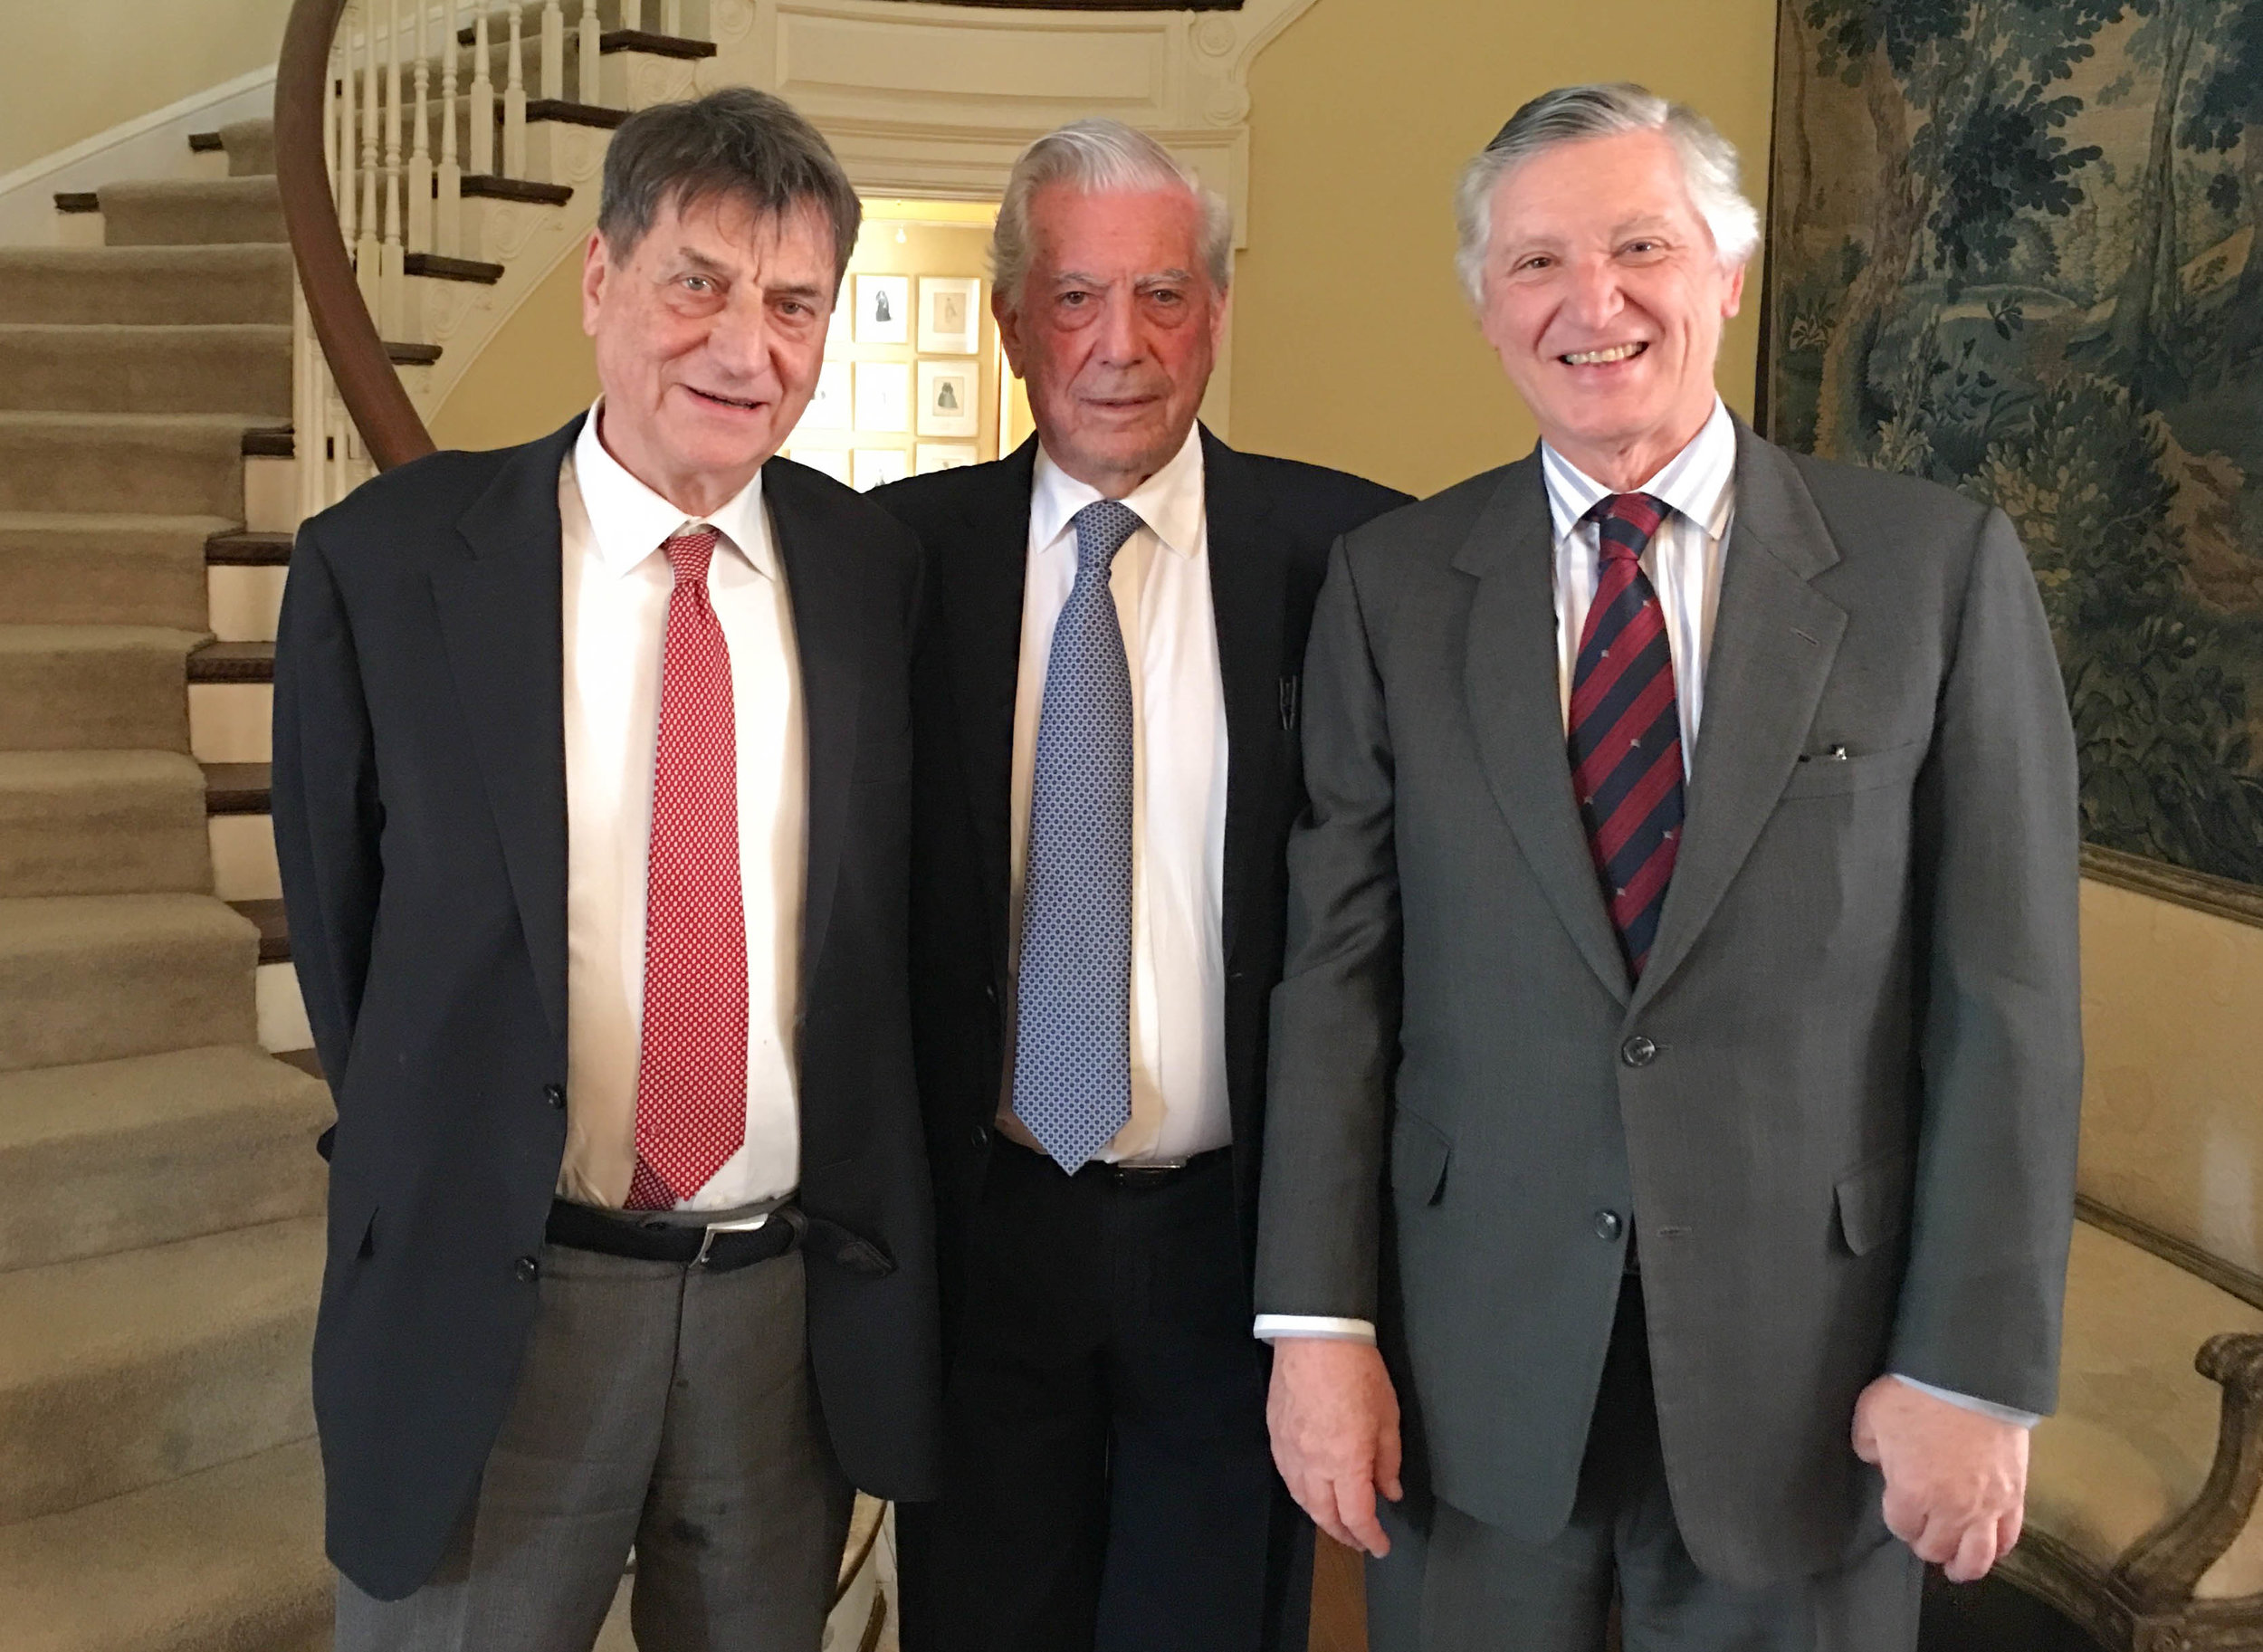 Ambassador of Peru, Carlos Pareja (right), offered a reception at the Embassy of Peru honoring the two writers, Mario Vargas Llosa (center), and Claudio Magris (left), among other invitees, before their presentation at the Georgetown University.